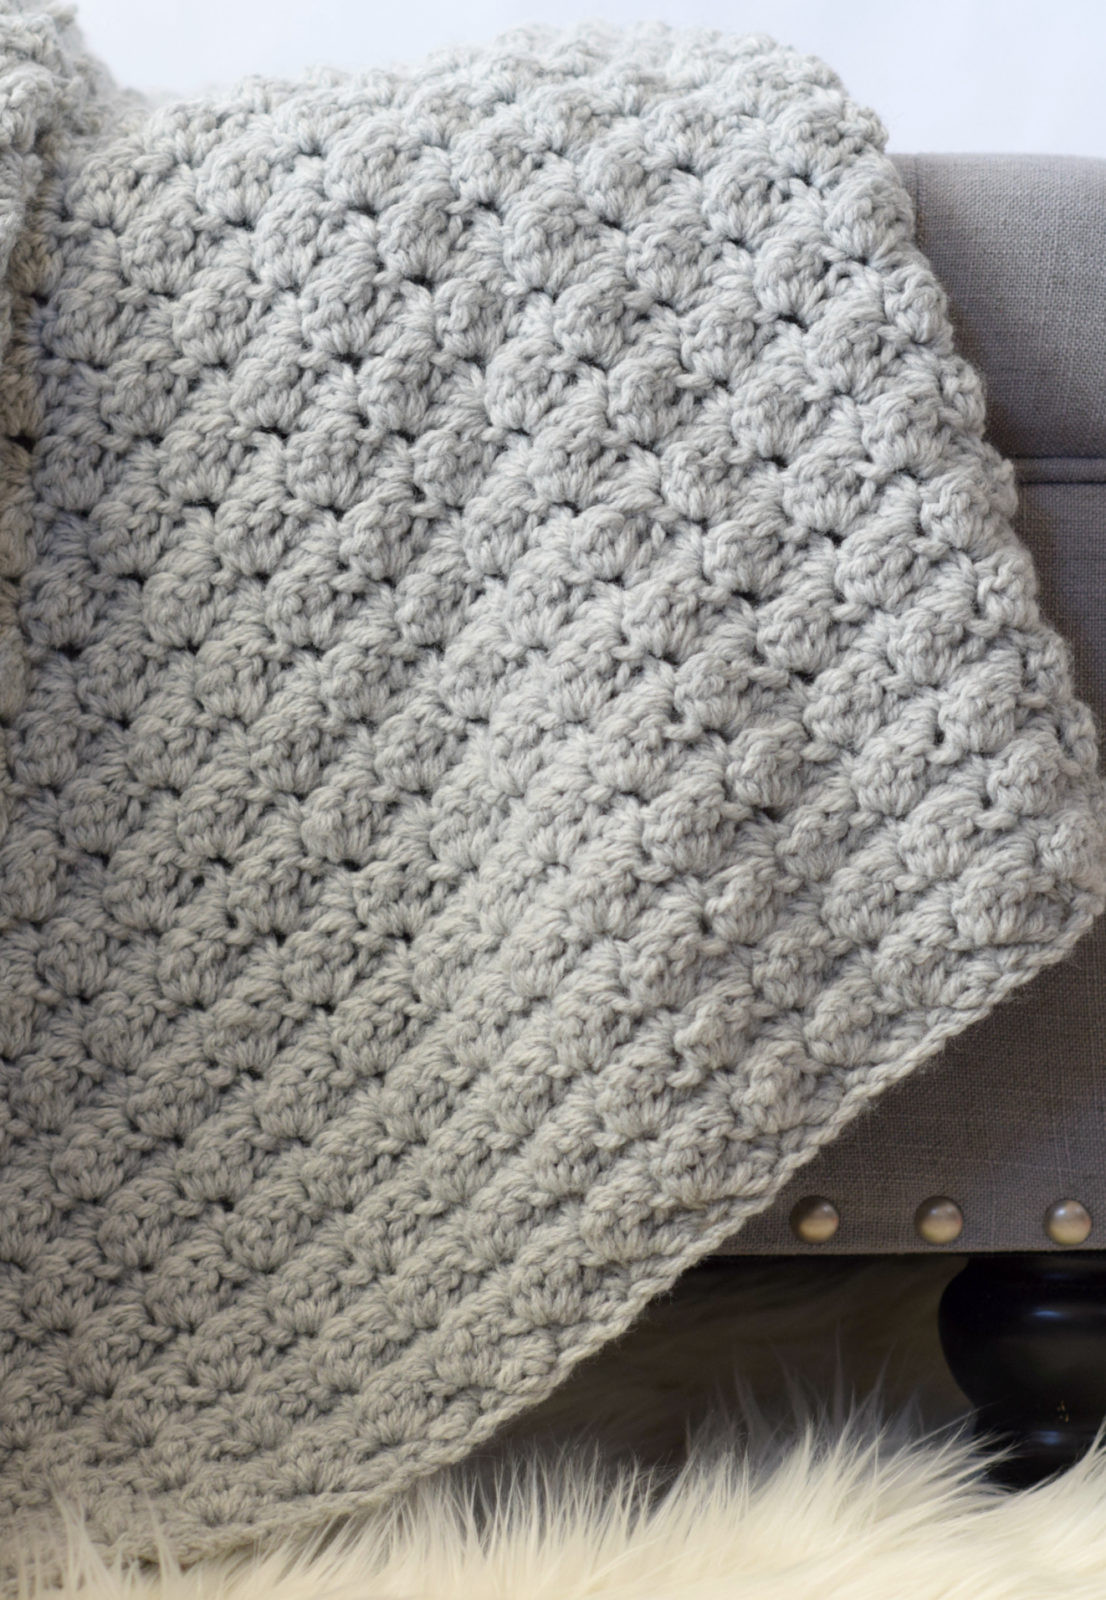 Crochet Throw Lovely Simple Crocheted Blanket Go to Pattern – Mama In A Stitch Of Luxury 41 Pics Crochet Throw